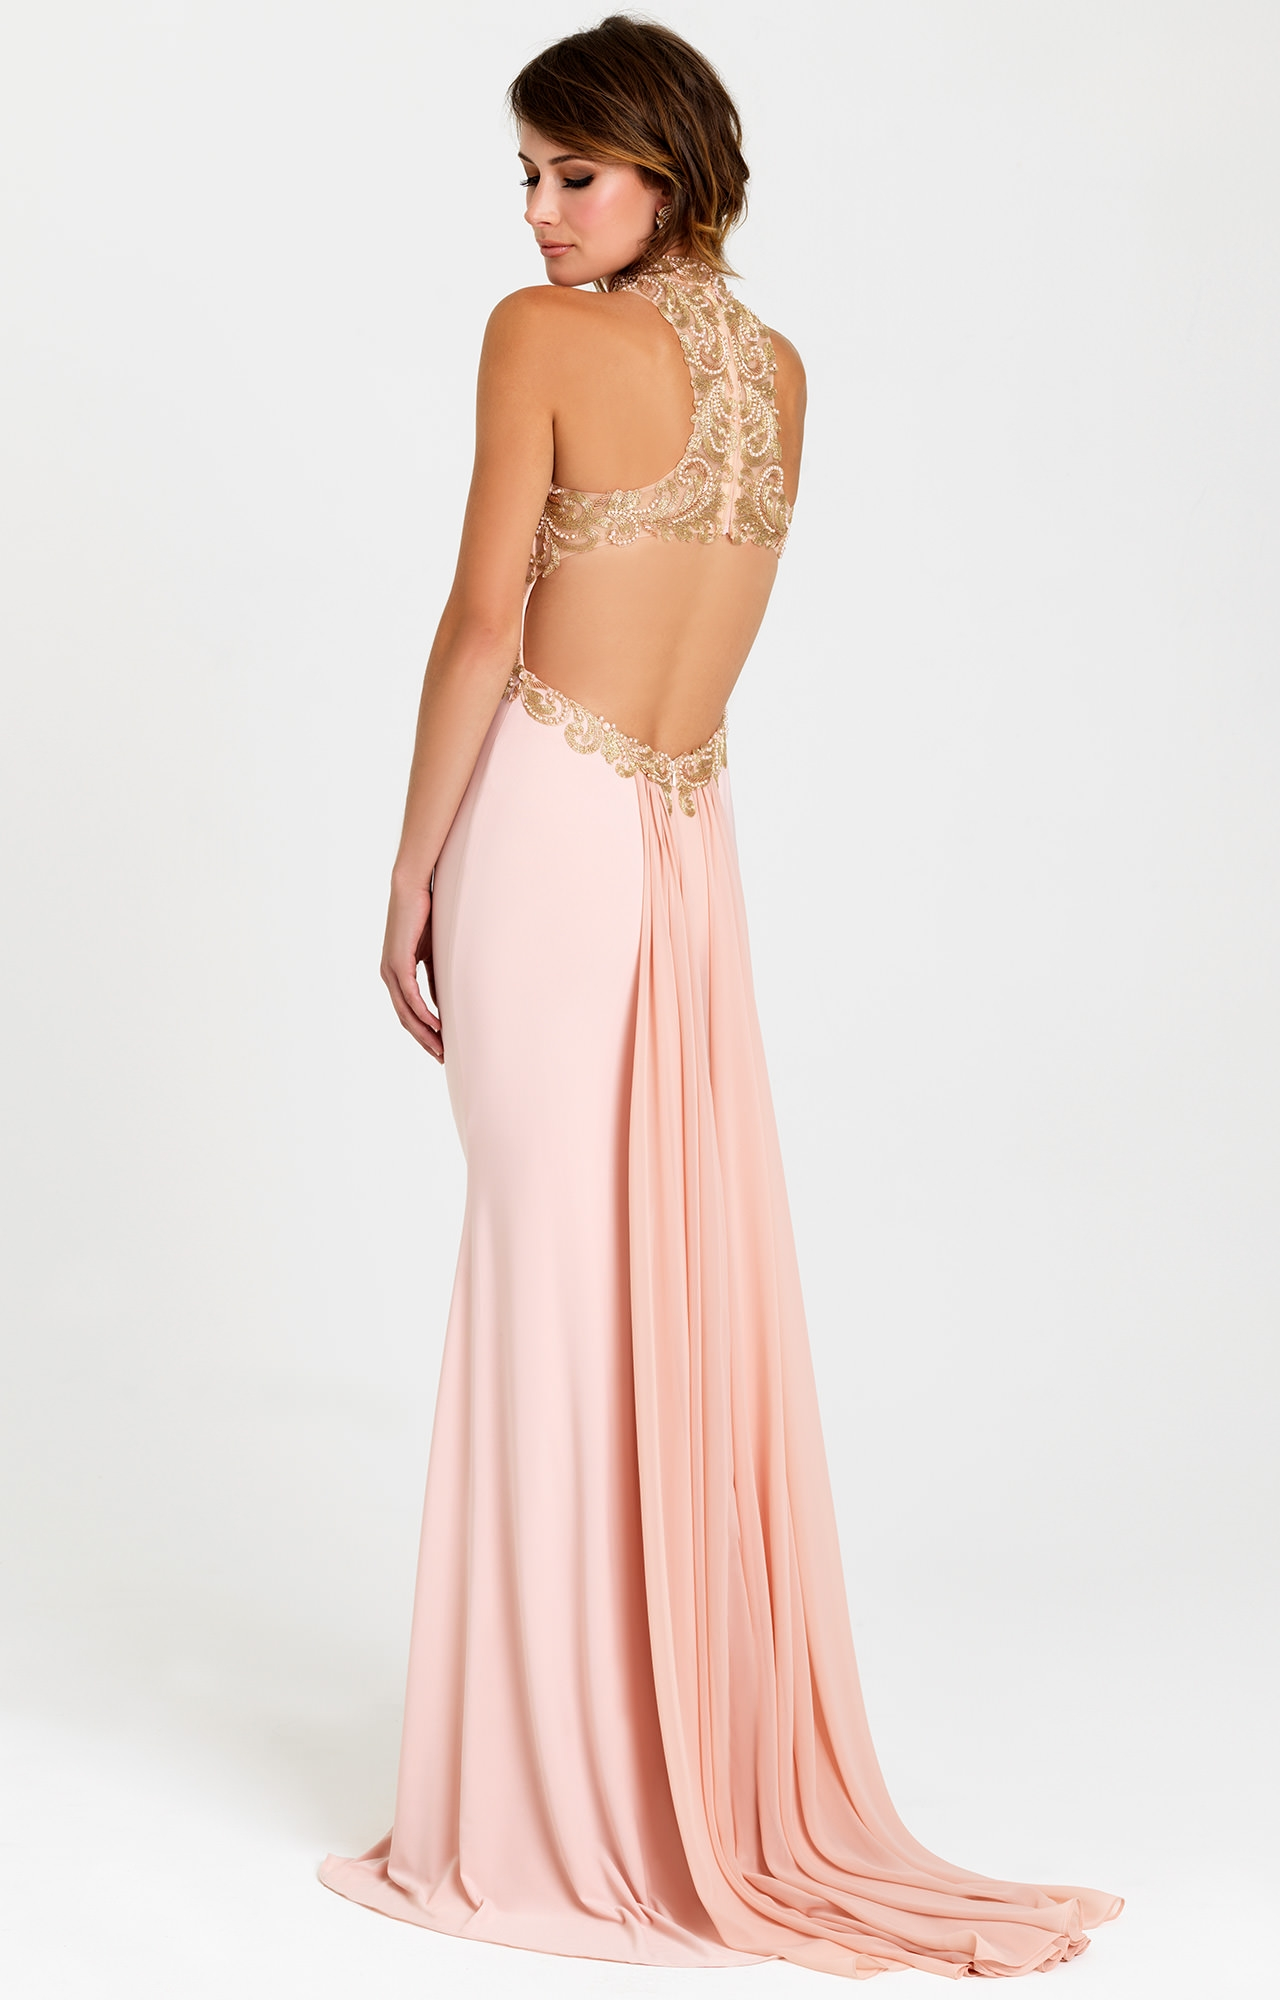 Madison James 16-396 - The Gorgeous Goddess Gown Prom Dress